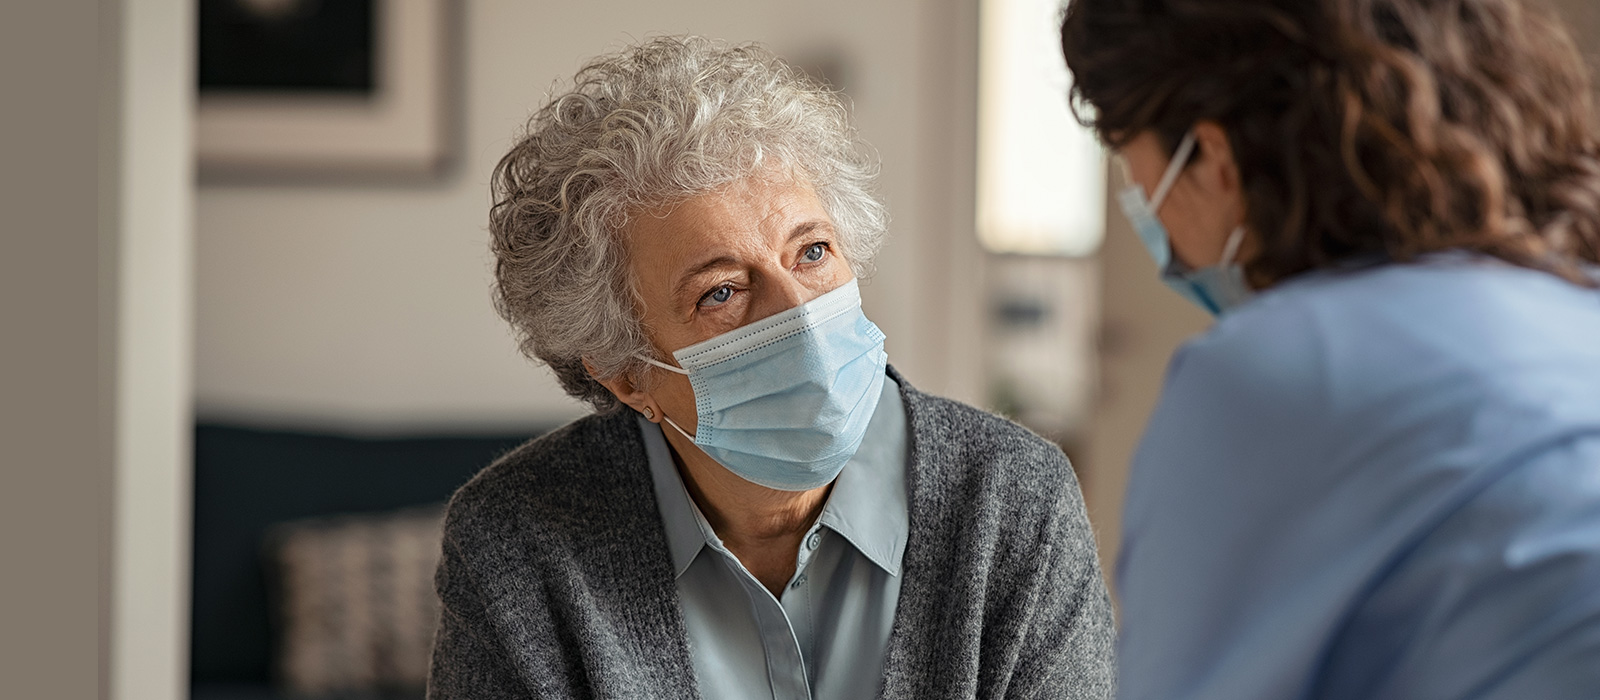 Elder woman wearing safety protective mask talking to a nurse